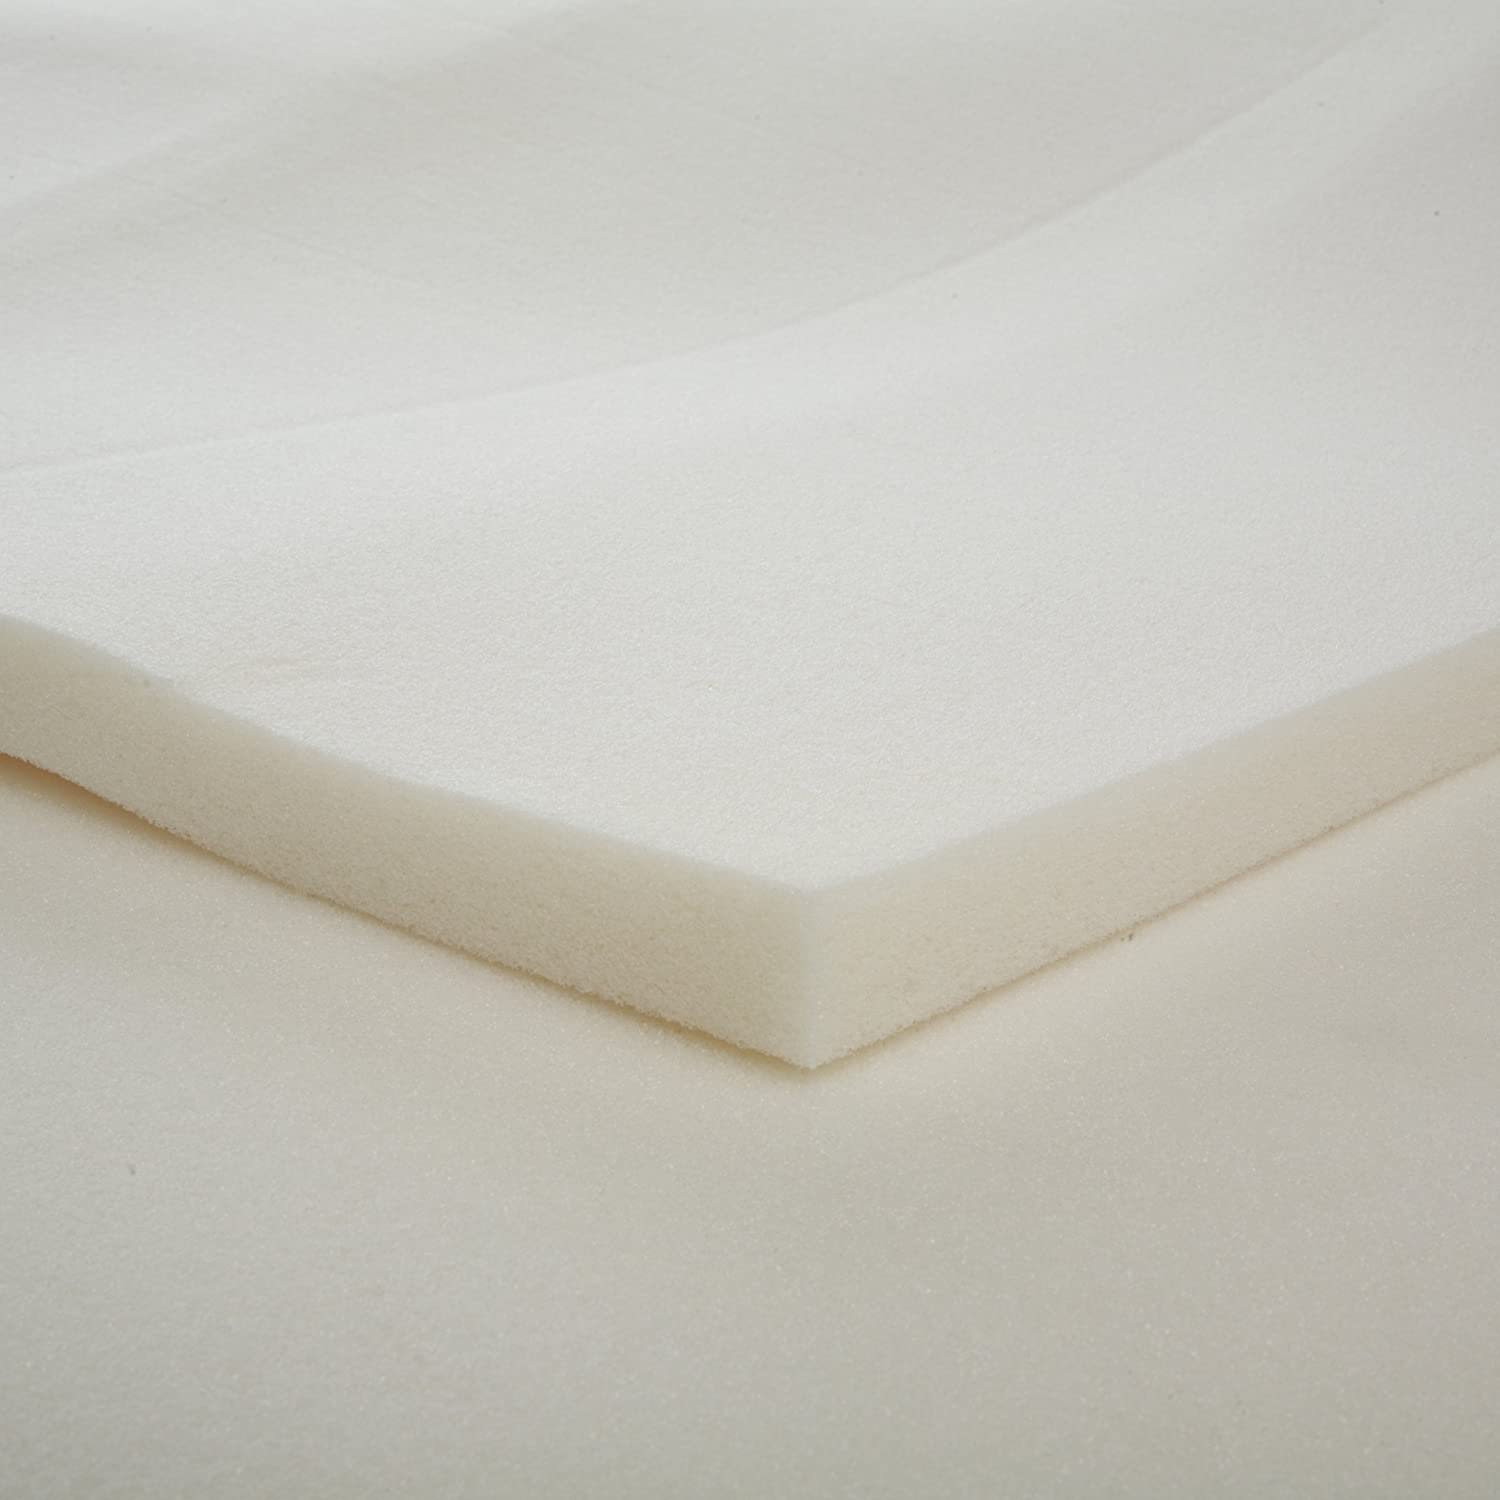 bed bedding mattress topper pad padding support comfort 1 inch thick